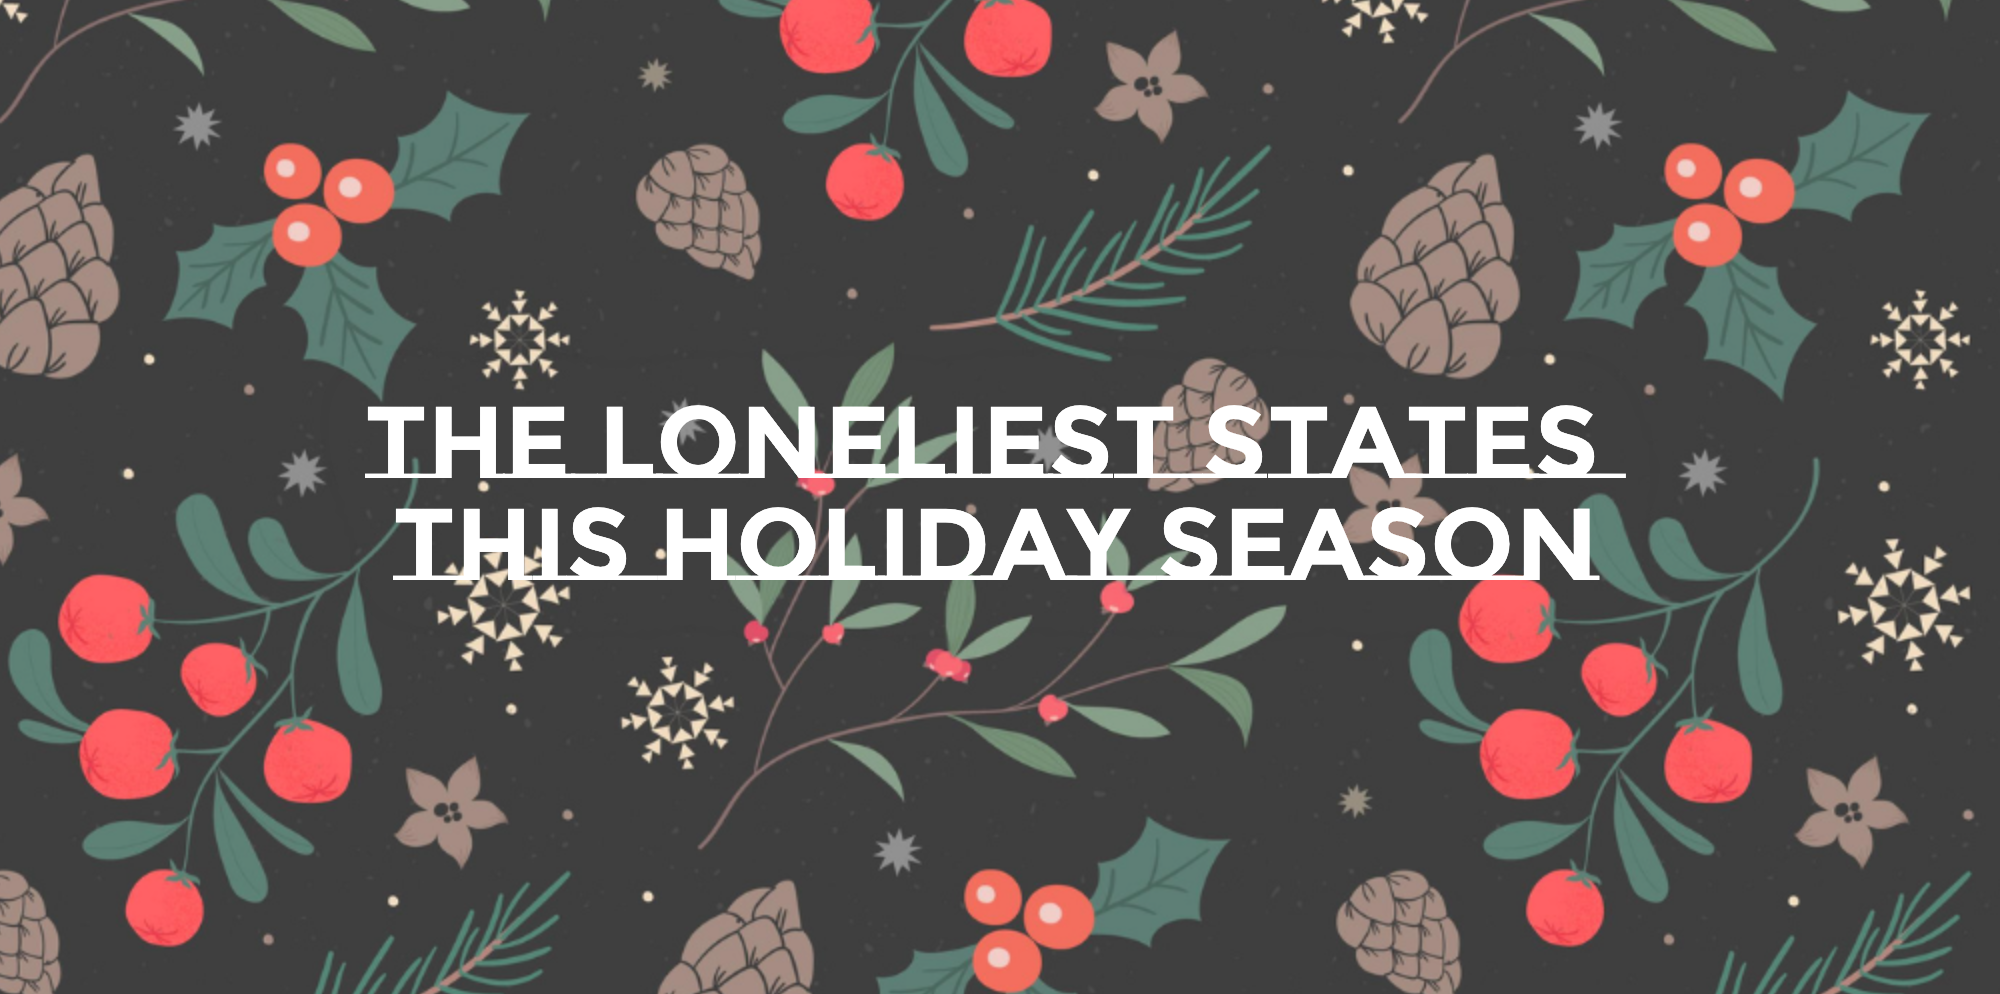 The Loneliest States this Holiday Season. Graphic courtesy of author.